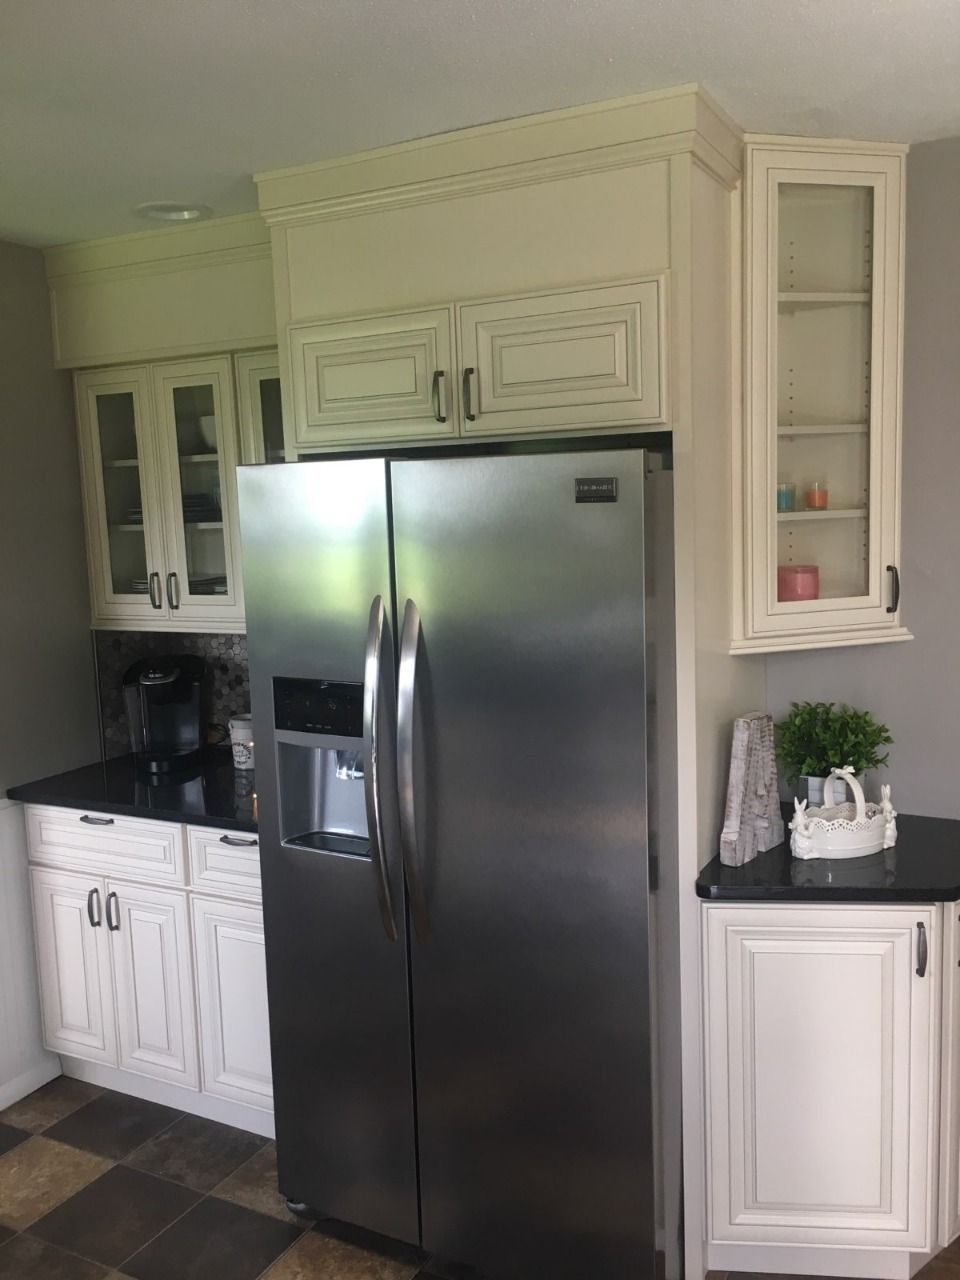 Antique Cabinets By Lily Ann Cabinets Kitchen Cabinets Prices Kitchen Cabinet Inspiration Wholesale Kitchen Cabinets